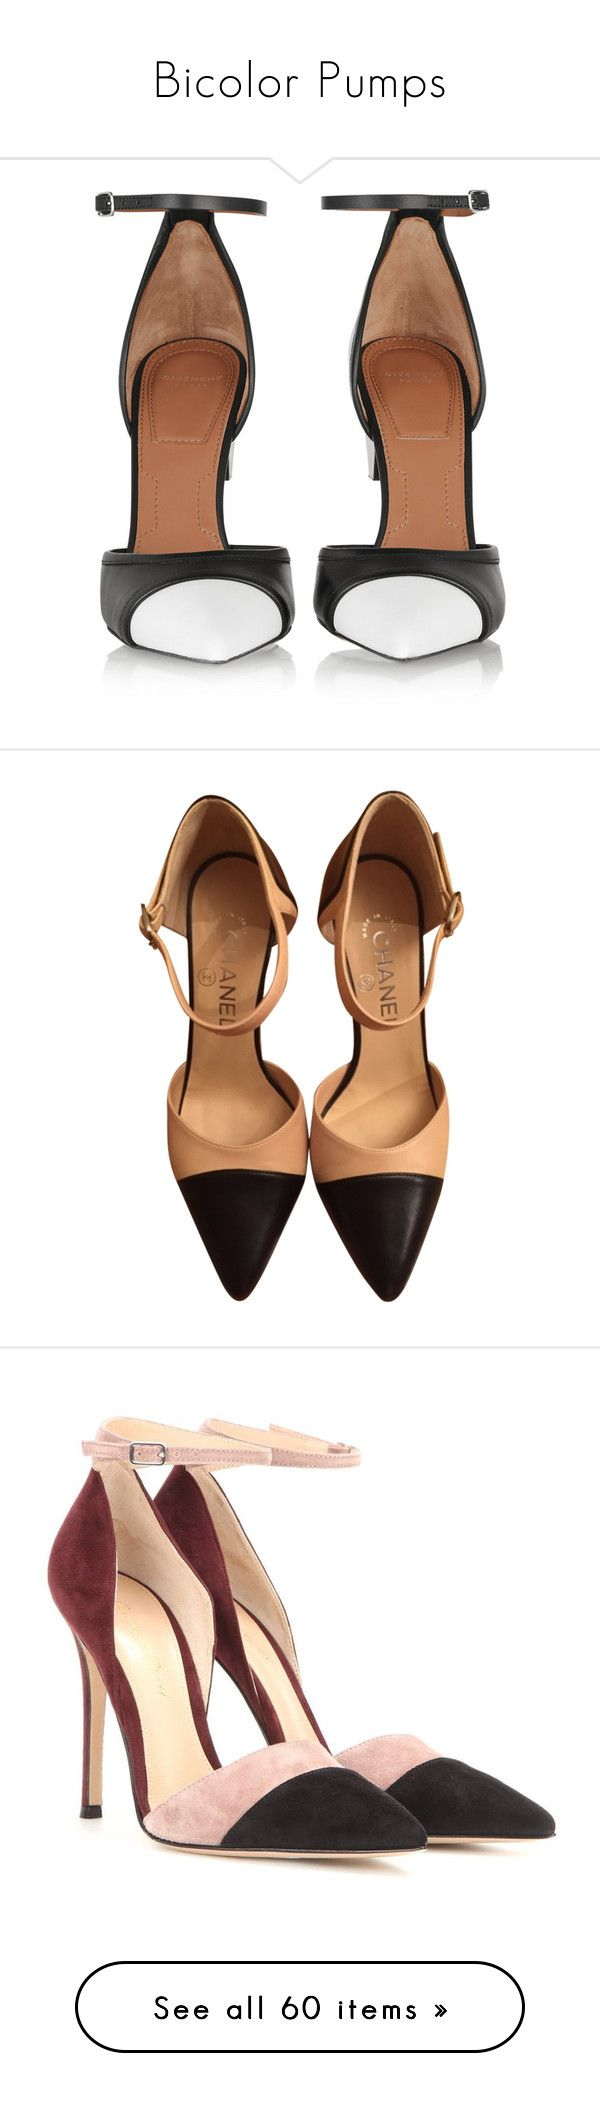 """""""Bicolor Pumps"""" by carlagoiata ❤ liked on Polyvore featuring shoes, pumps, heels, givenchy, footwear, leather shoes, stiletto high heel shoes, black and white ankle strap pumps, black and white shoes and givenchy shoes"""